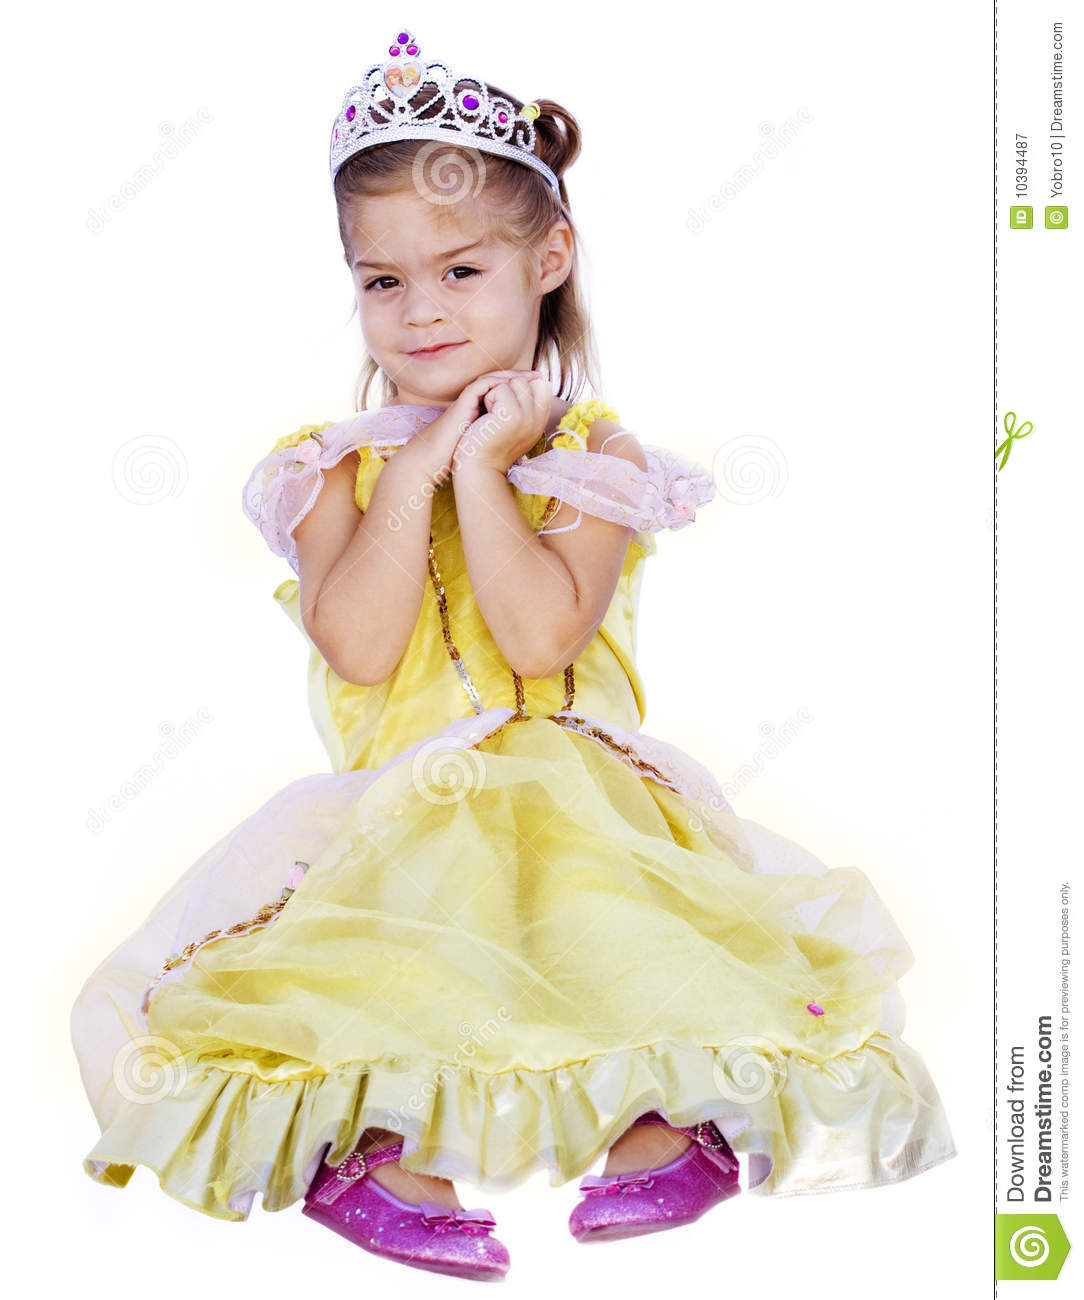 Https Www Dreamstime Com Royalty Free Stock Photography Little Princess Image10394487